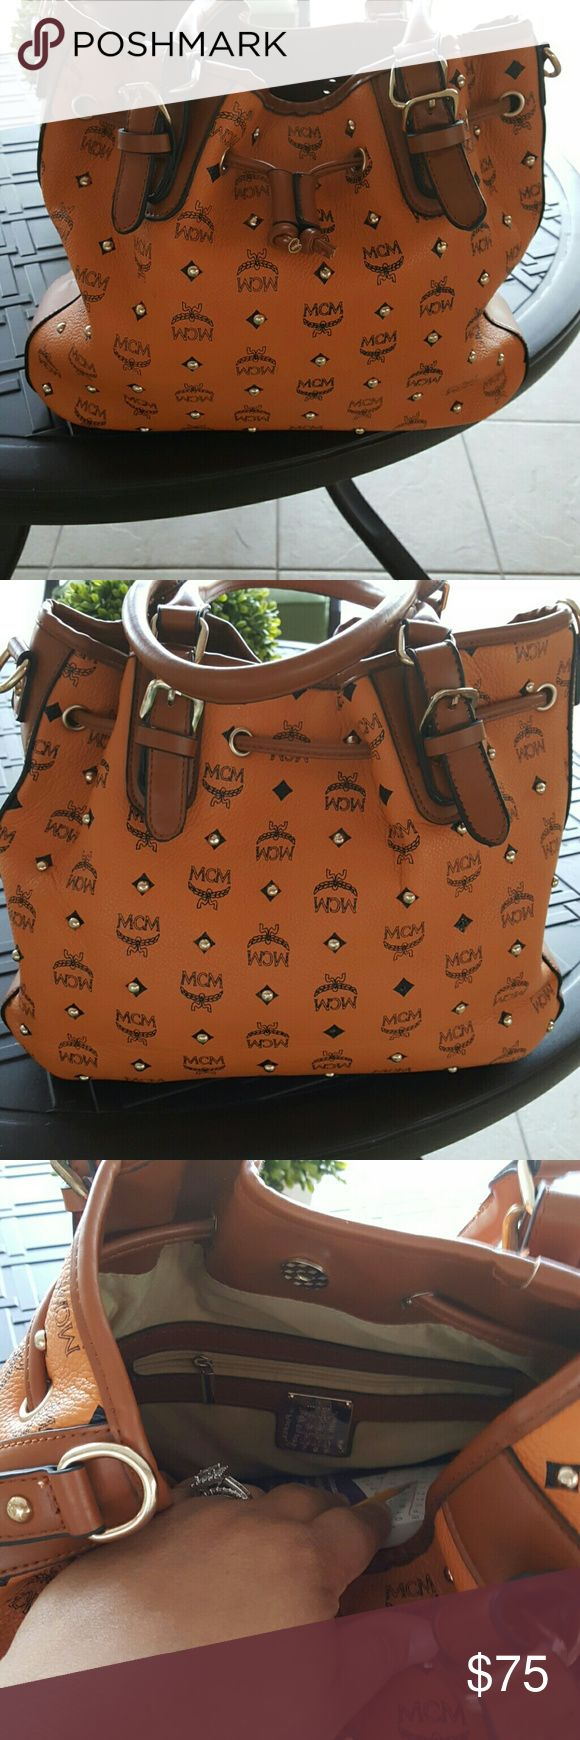 Mcm handbag Cognac in color with rivets drawstring bag. I don't have the long strap that goes with it. In great shape. Bags Totes